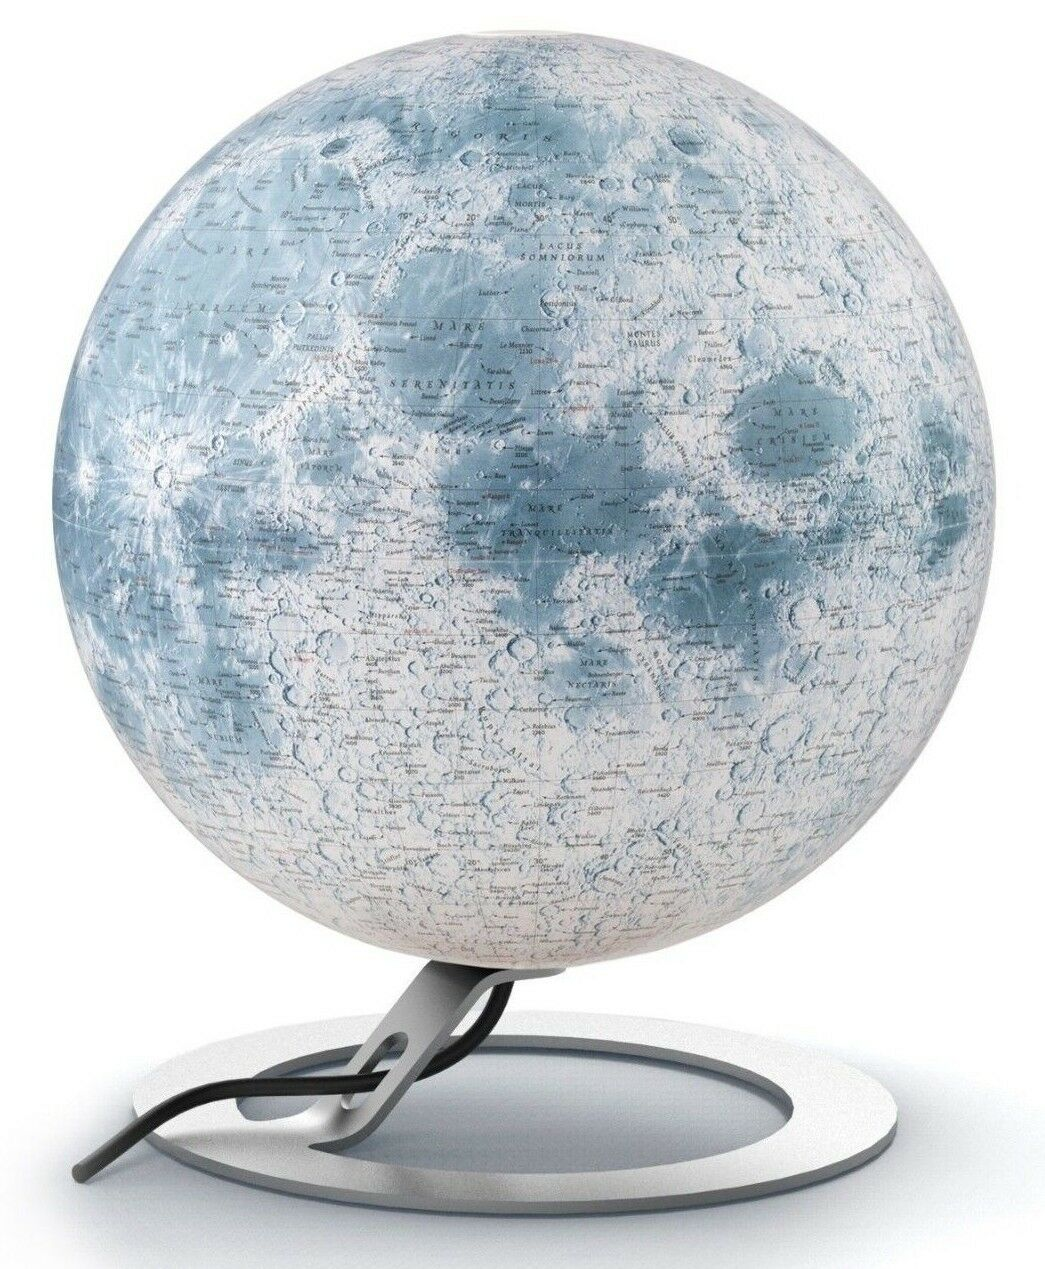 30cm National Geographic Moon Surface Globe inc Sea of Tranquility